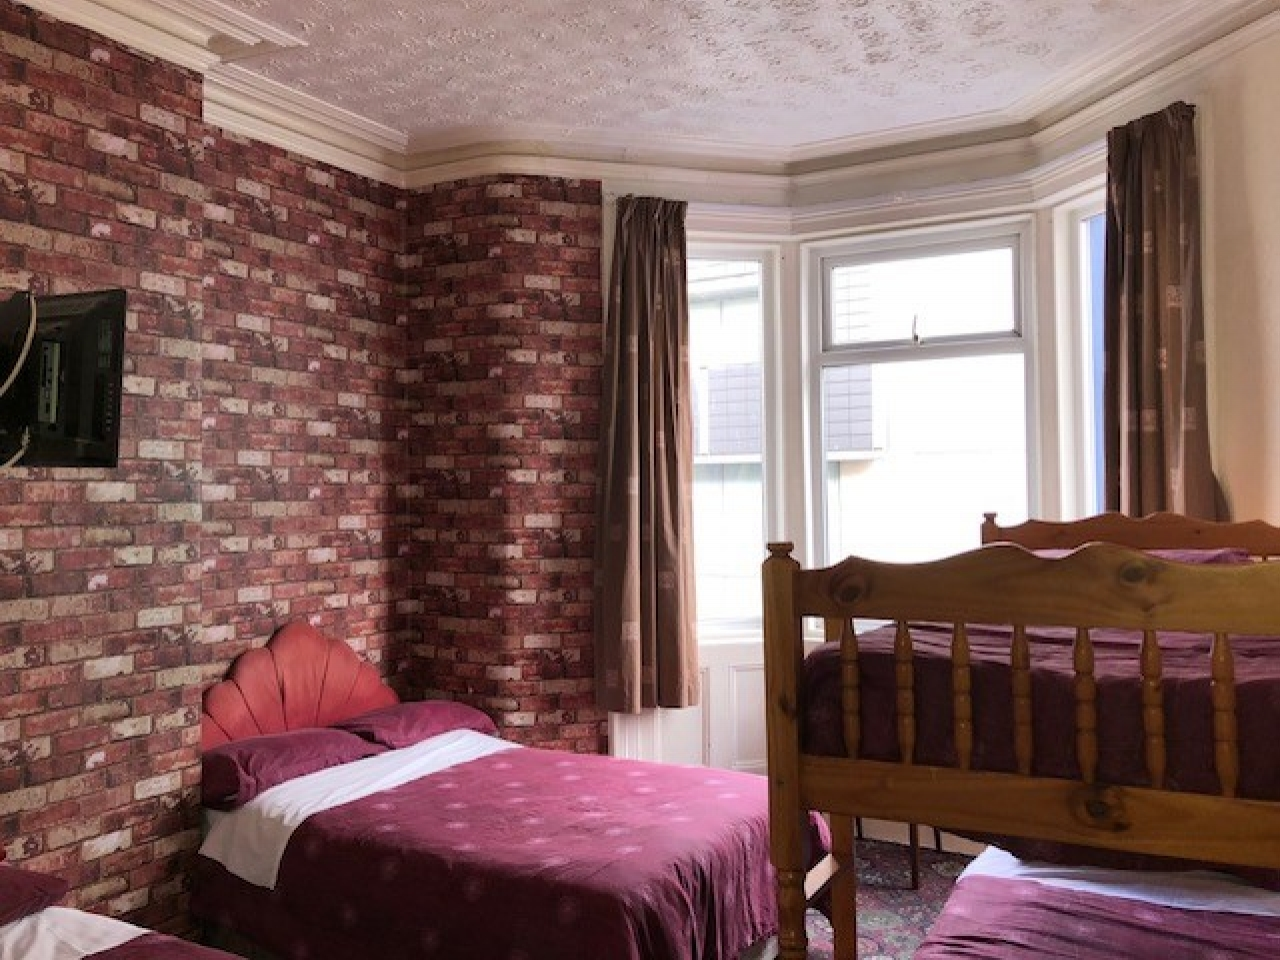 12 Bedroom Hotel For Sale - Photograph 8